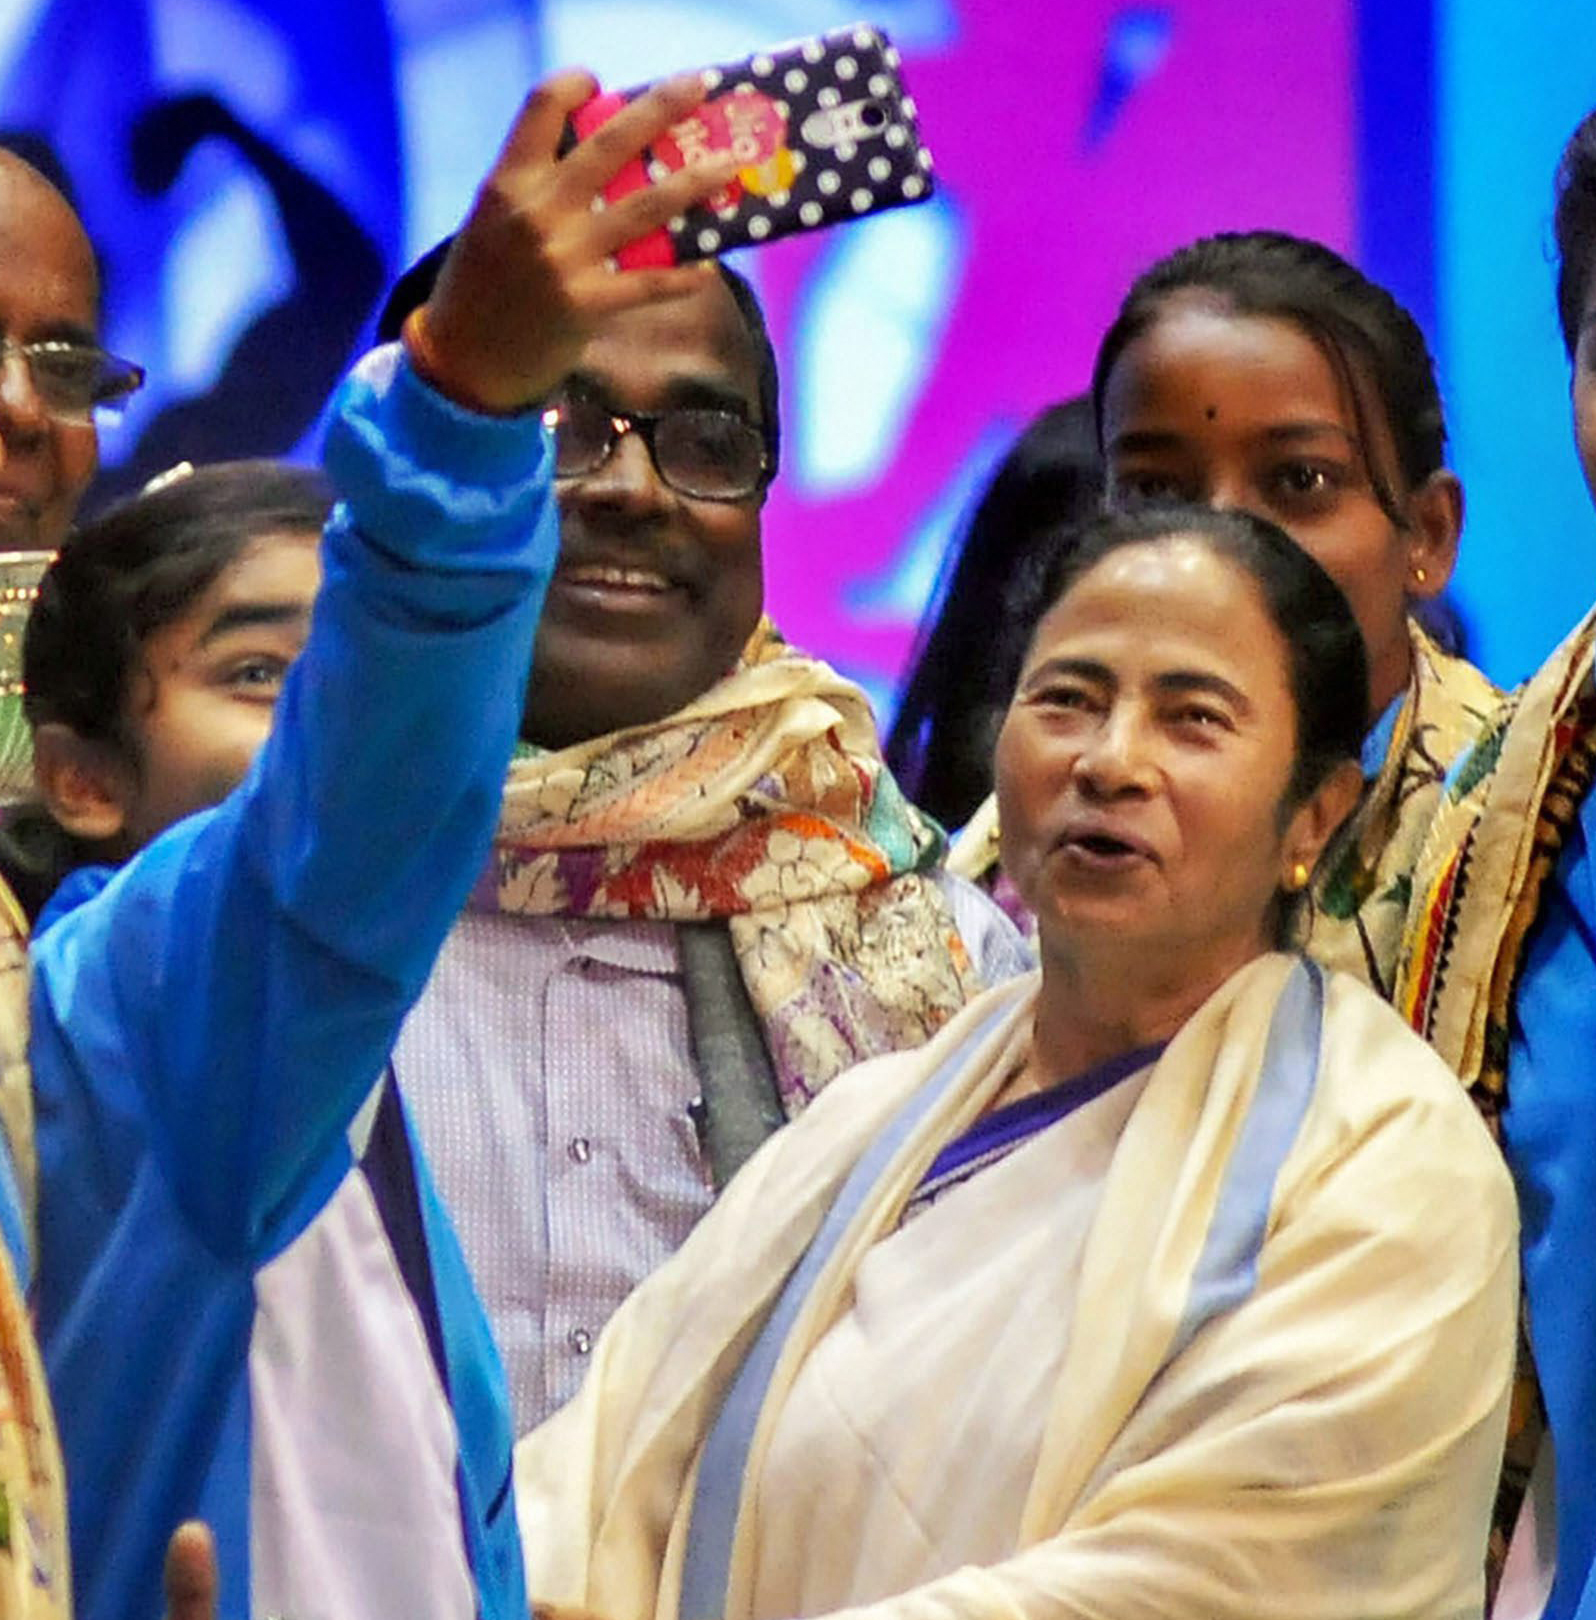 Women's junior volleyball national champion team takes a selfie with West Bengal Chief Minister Mamata Banerjee where they were awarded a special award at 'Khelashree' in Calcutta on Monday, Jan. 28, 2019.